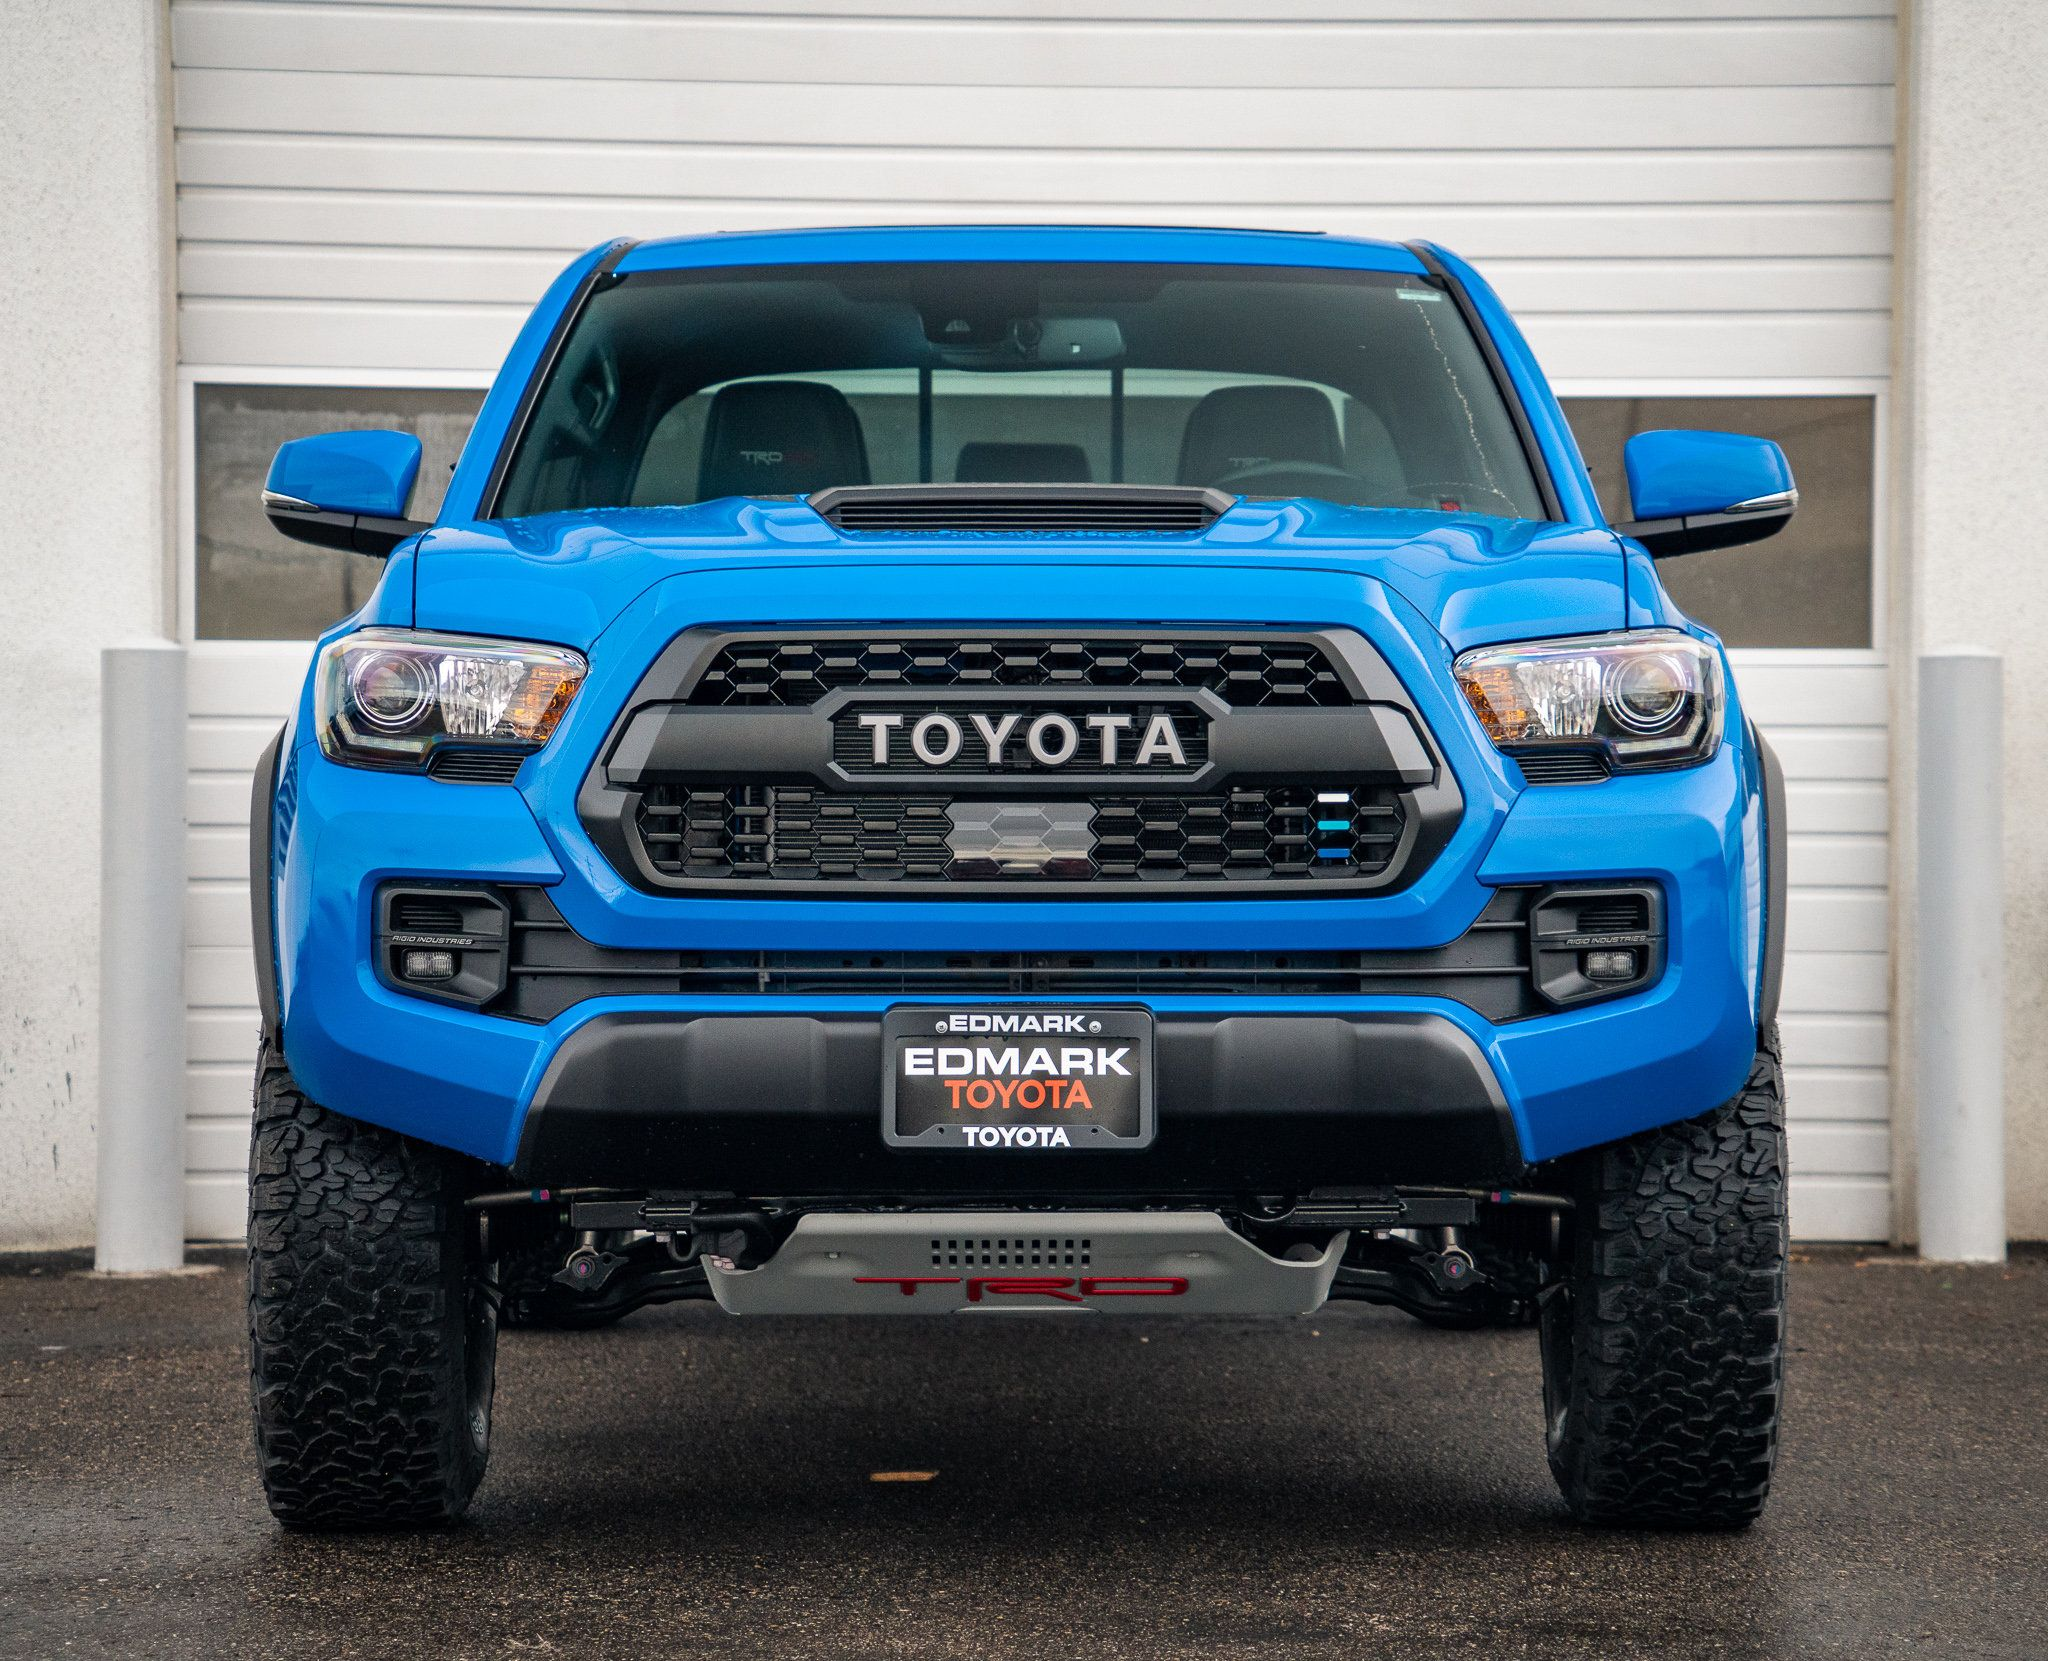 Tacoma Trd Pro Grille Decals Etsy Tacoma Trd Trd Toyota Tacoma 4x4